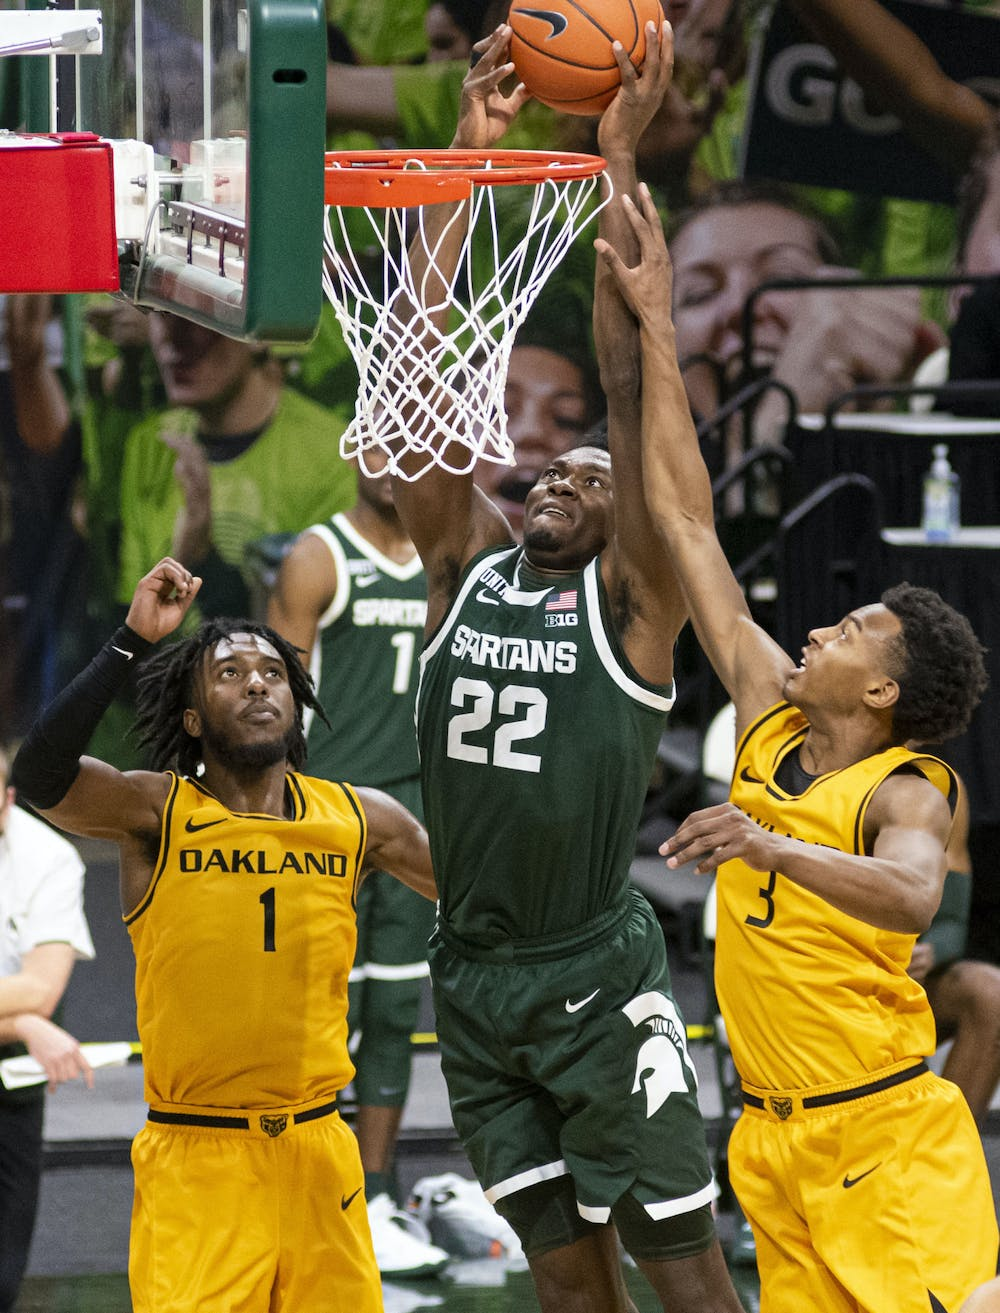 Freshman center Mady Sissoko (22) attempts to dunk on the Oakland net during the second half, but is unsuccessful. The Spartans came back after the first half to pull out a 109-91 win on Dec. 13, 2020.